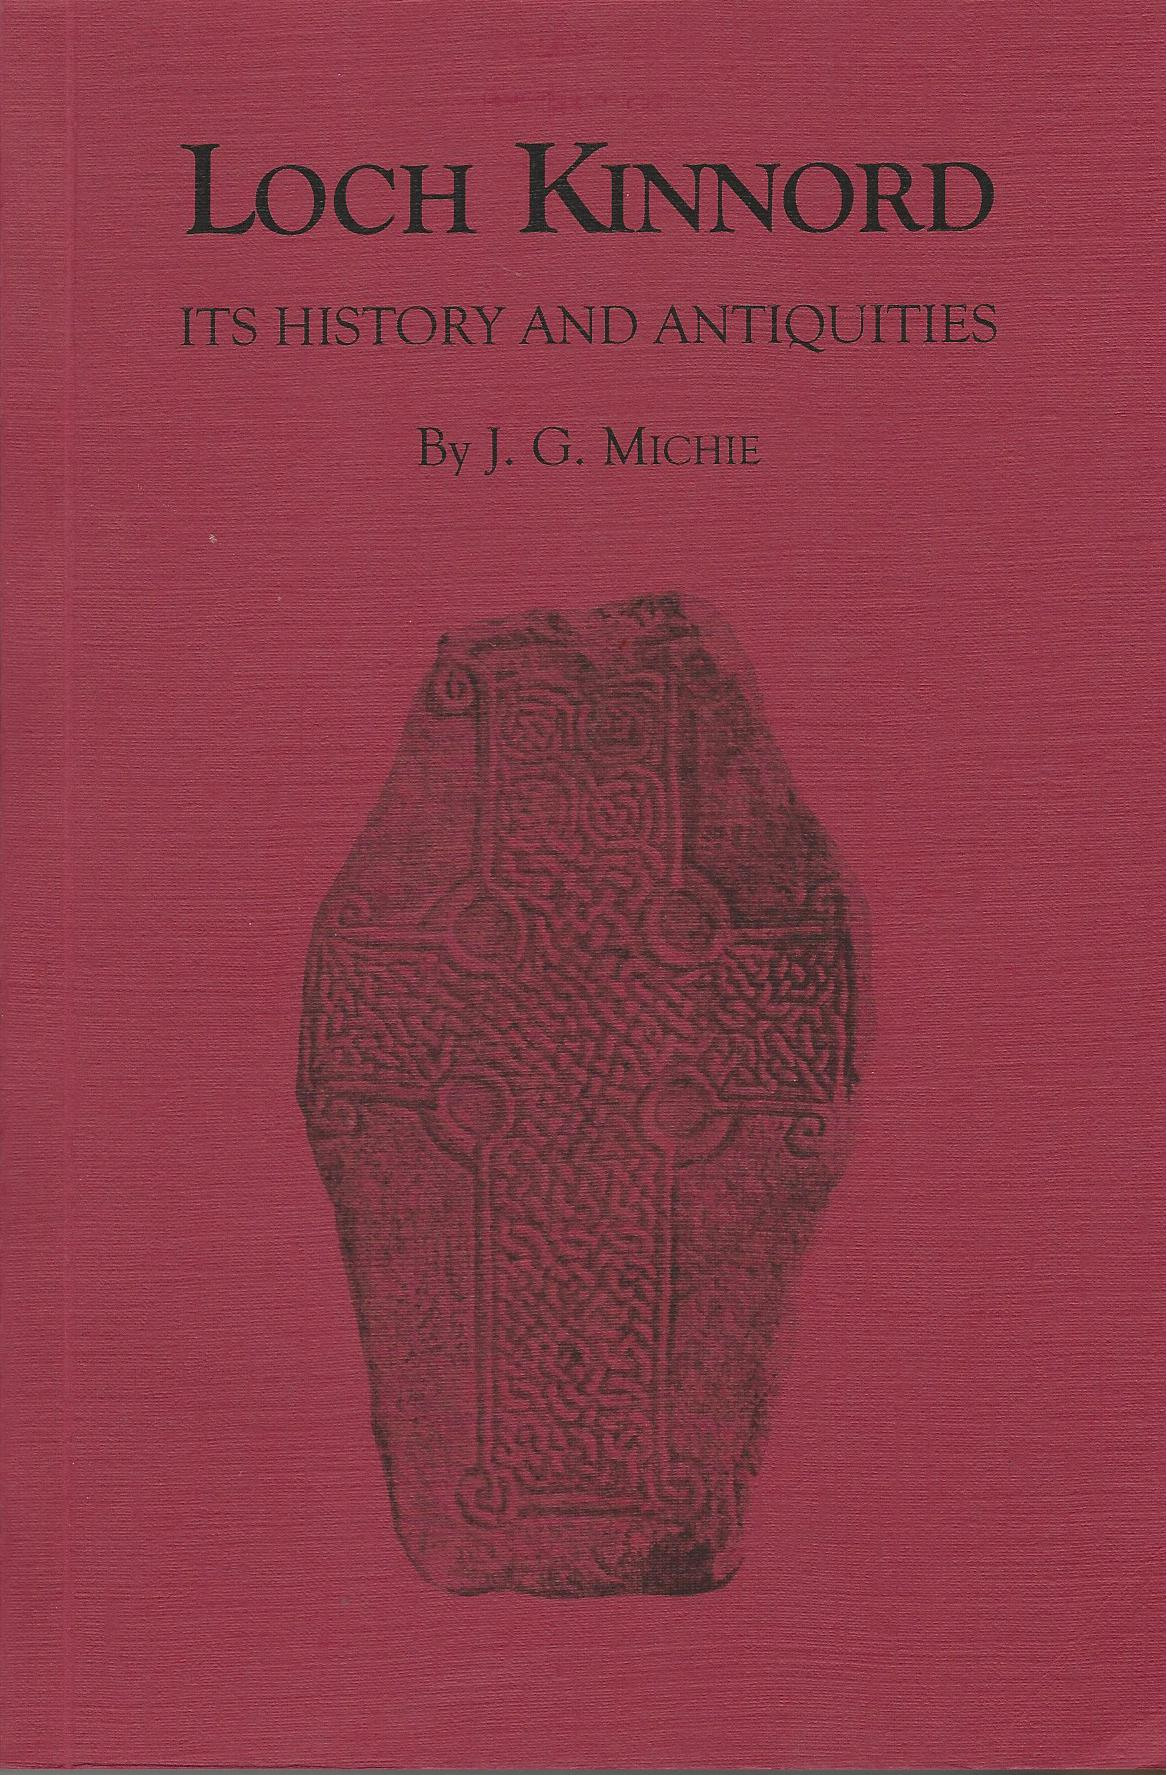 Image for Loch Kinnord: Its History and Antiquities: New and Revised Edition with The Church of Tullich and Other Papers.